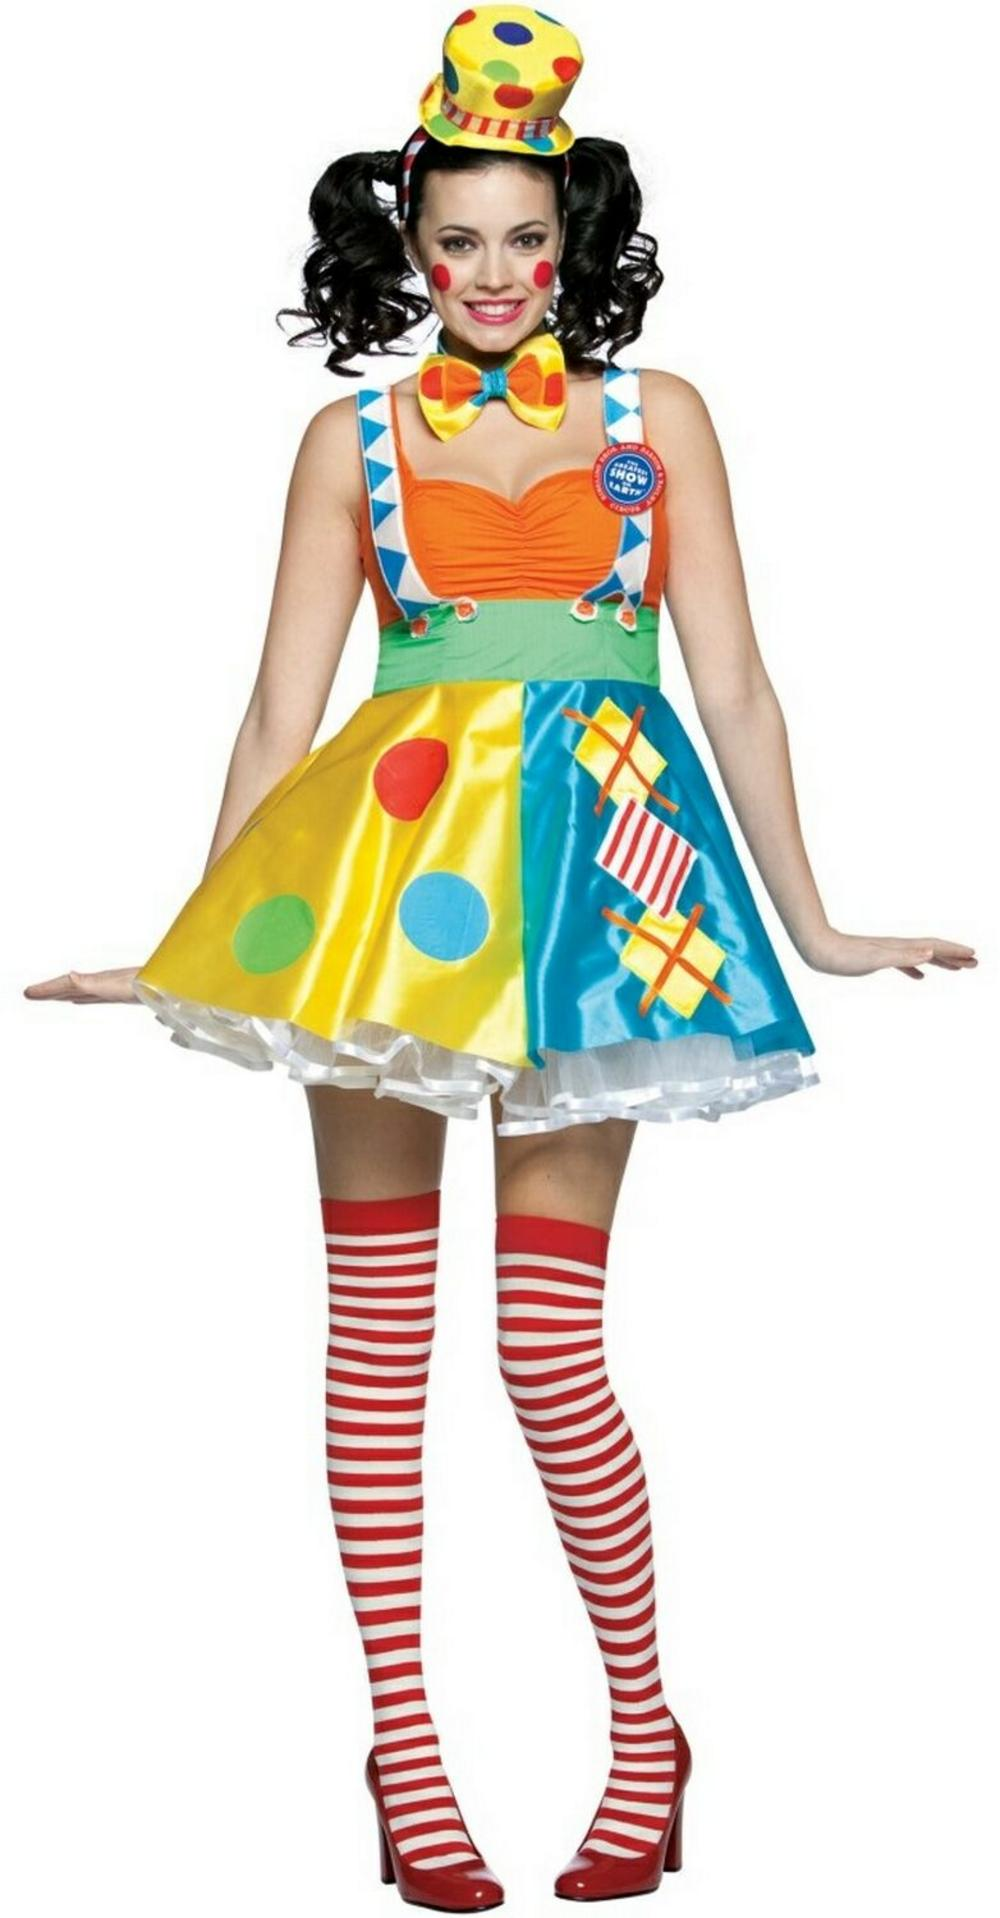 You searched for: circus costume! Etsy is the home to thousands of handmade, vintage, and one-of-a-kind products and gifts related to your search. No matter what you're looking for or where you are in the world, our global marketplace of sellers can help you find unique and affordable options. Let's get started!